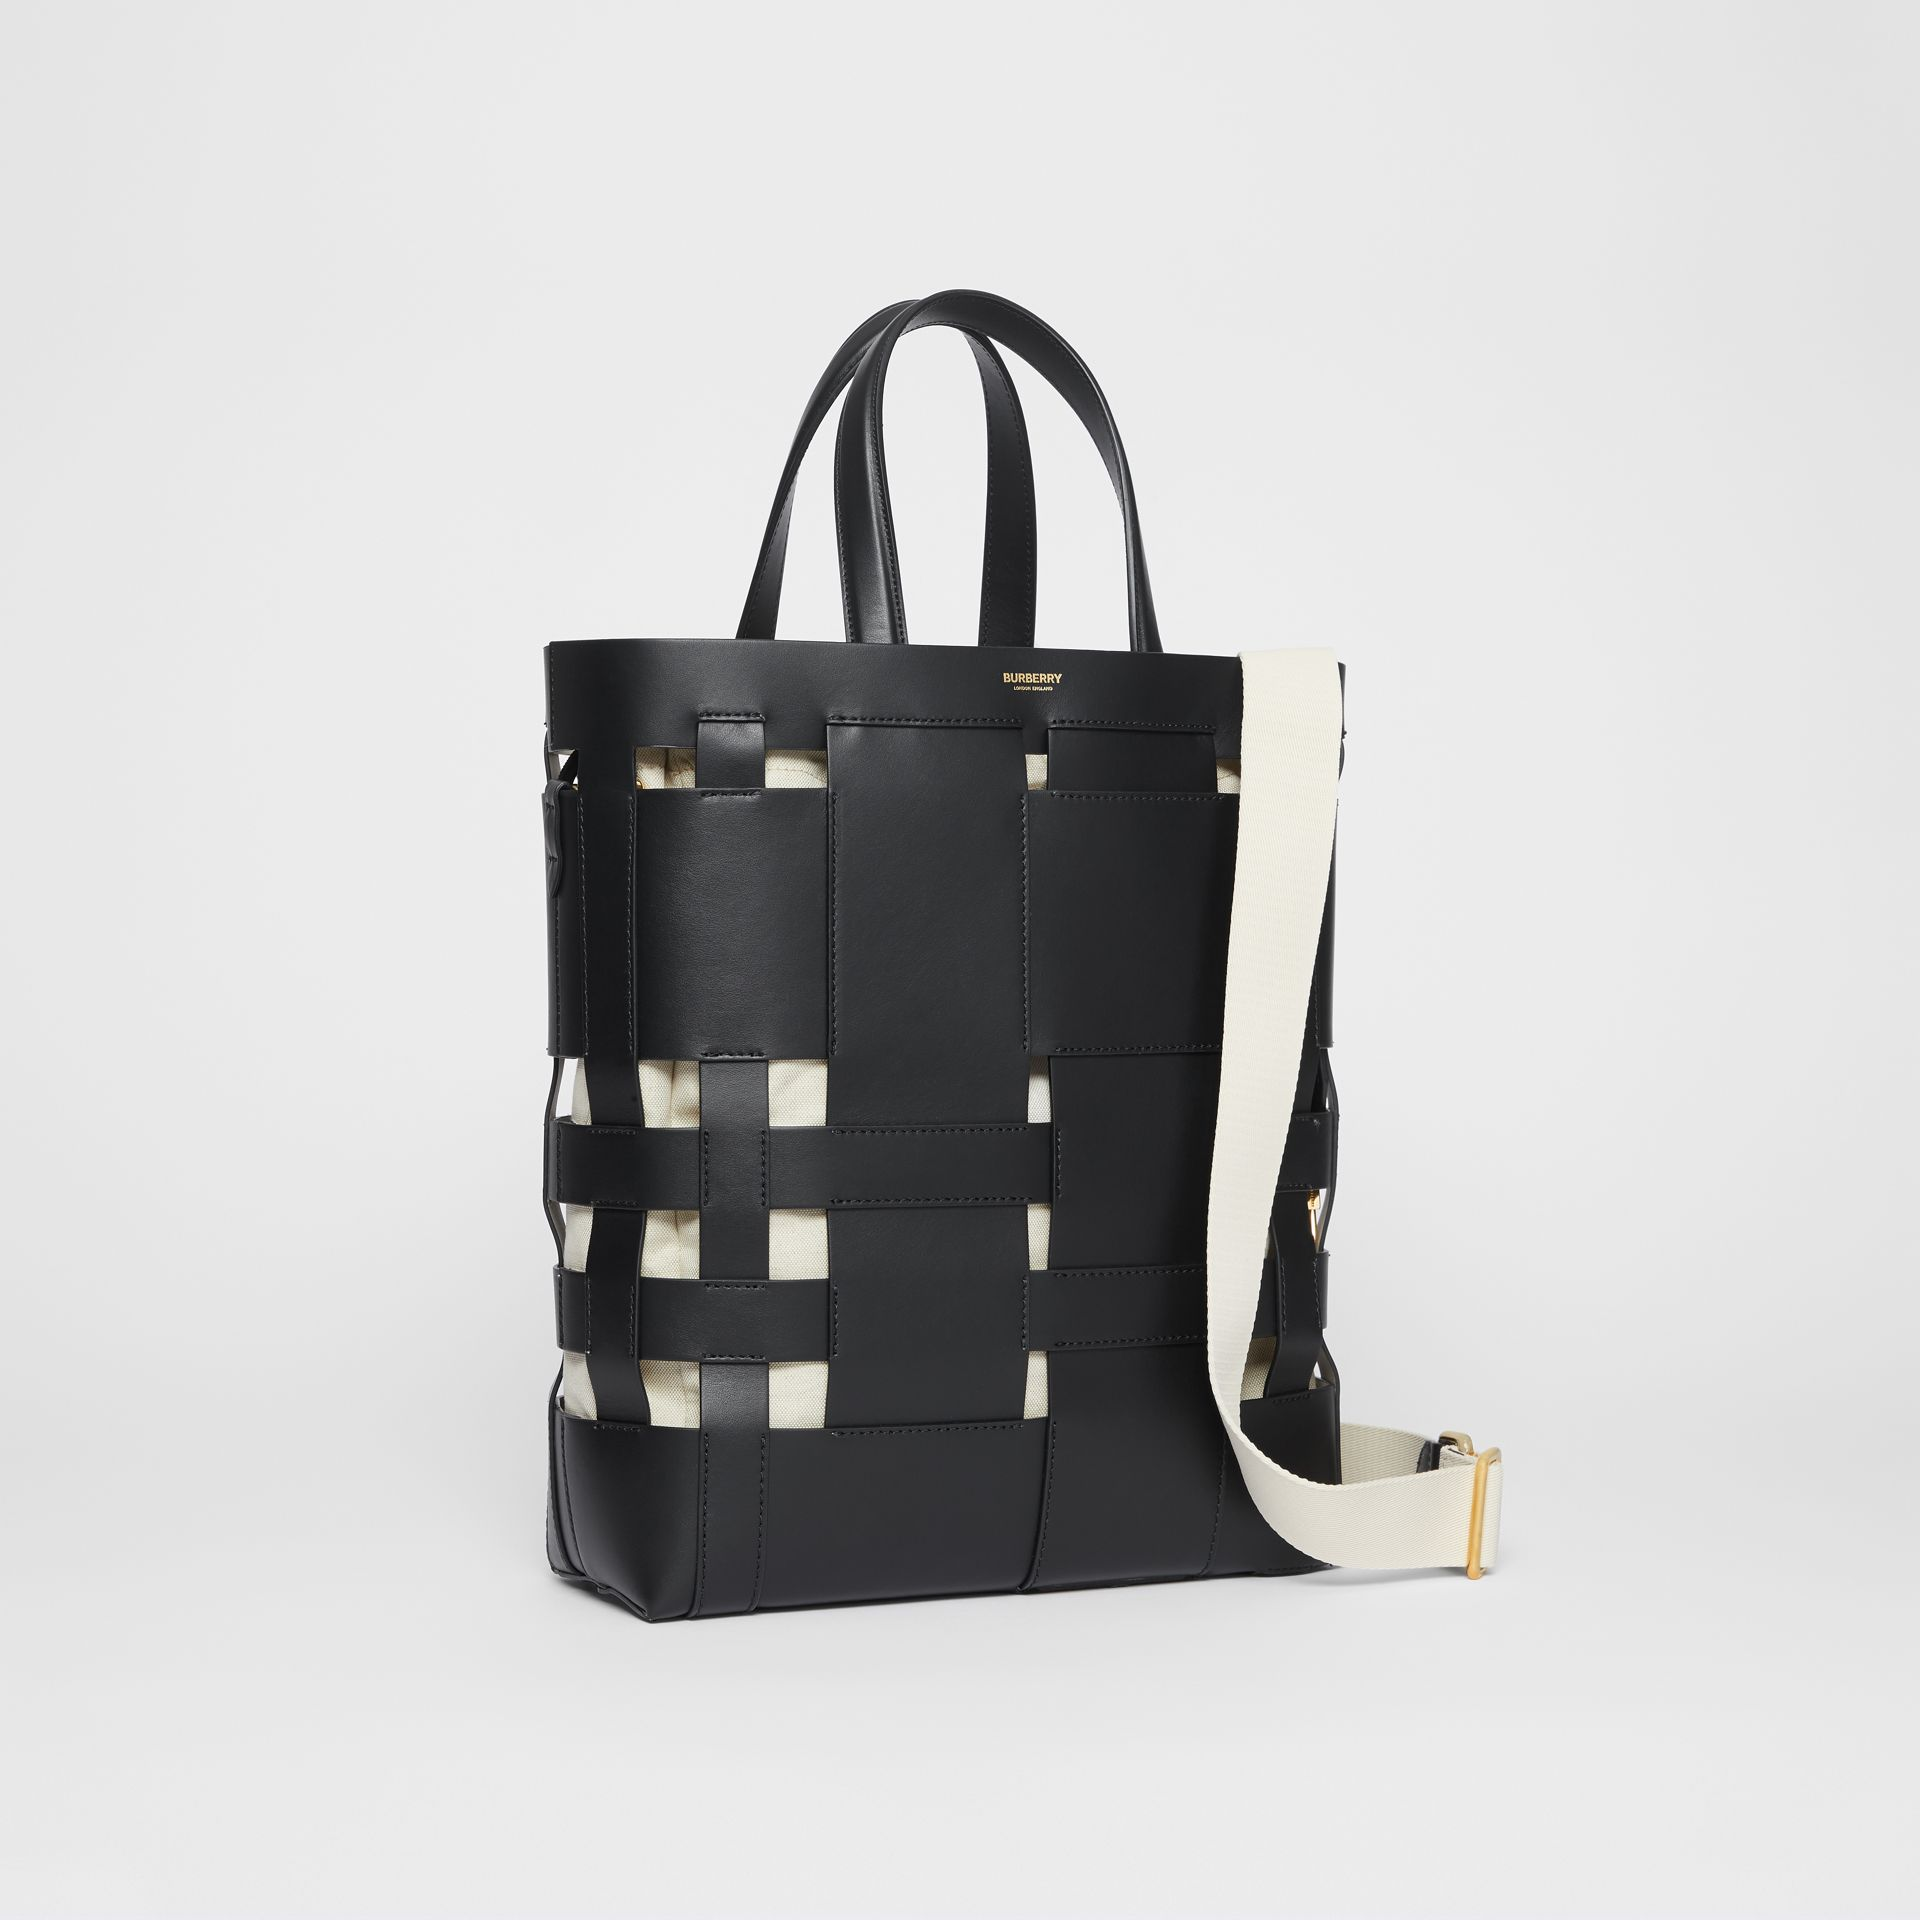 Medium Leather Foster Tote in Black - Women | Burberry Canada - gallery image 6